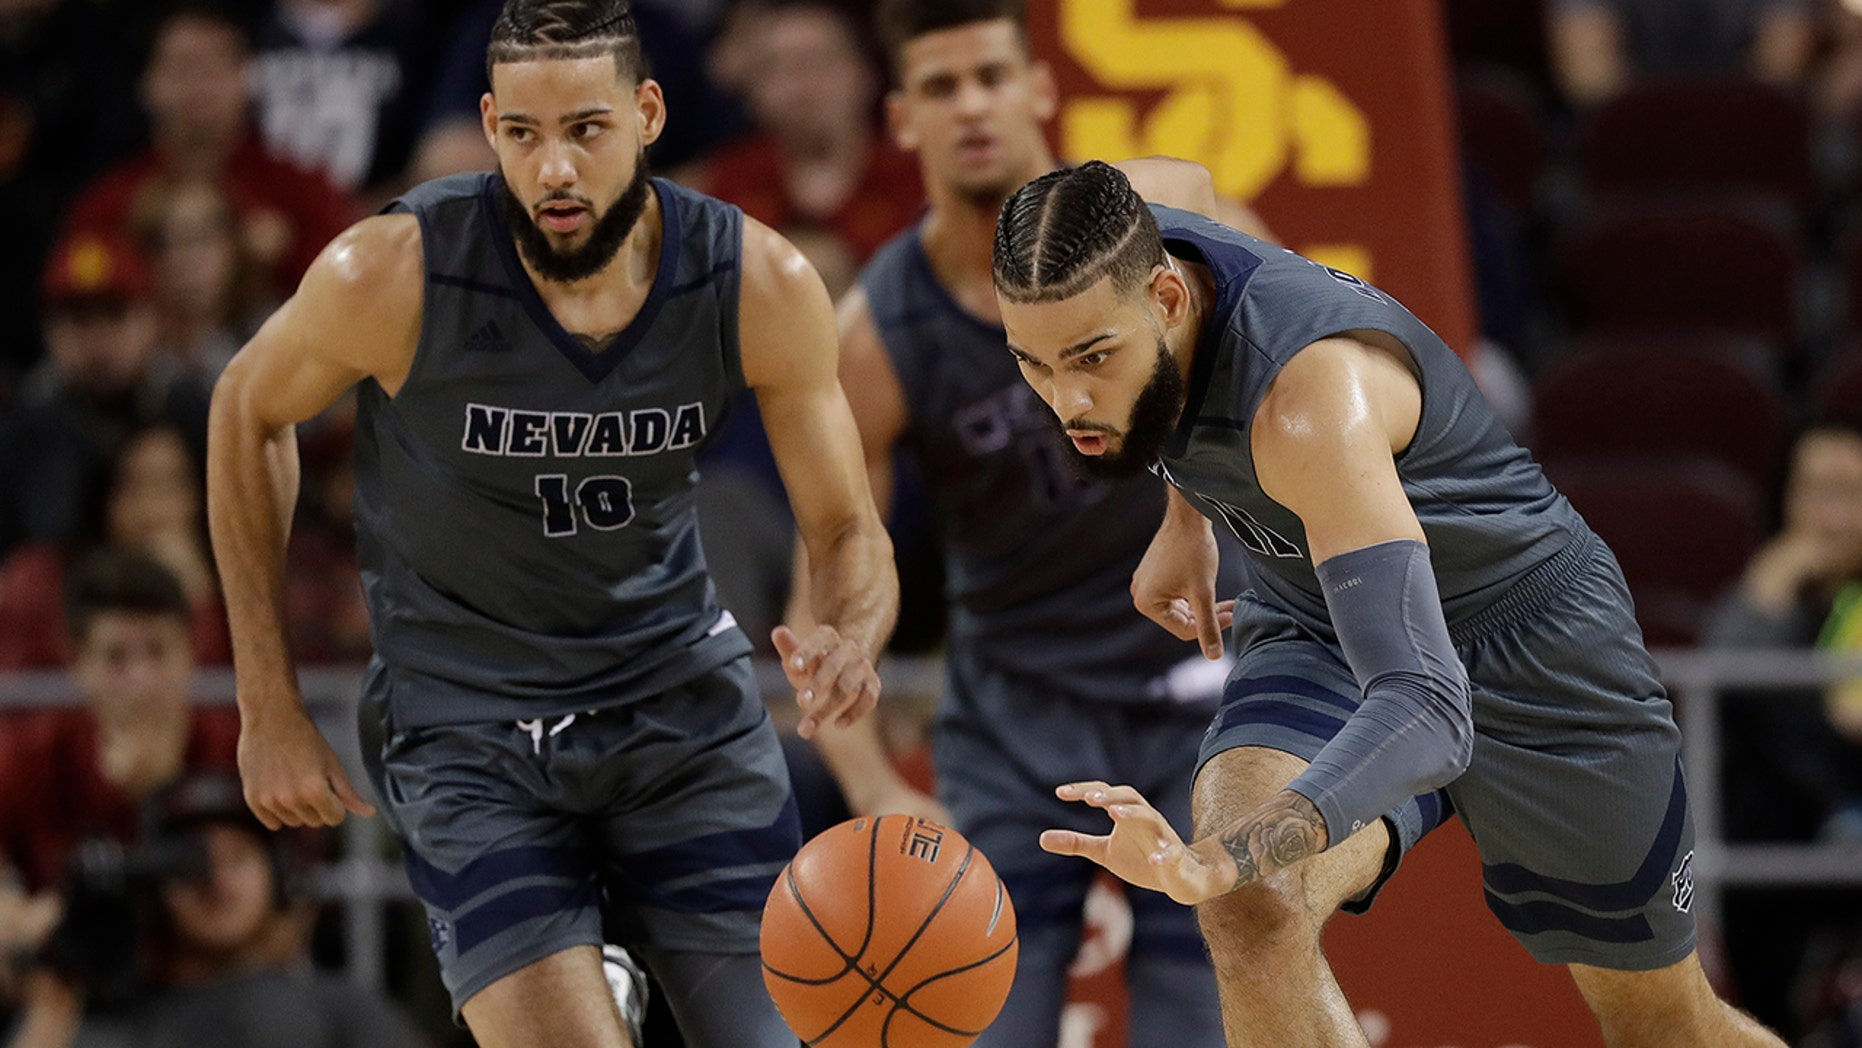 FILE - In this Dec. 1, 2018, file photo, Nevada forward Cody Martin, right, dribbles downcourt as his twin brother Caleb Martin, left, trails during the second half of an NCAA college basketball game against Southern California in Los Angeles.